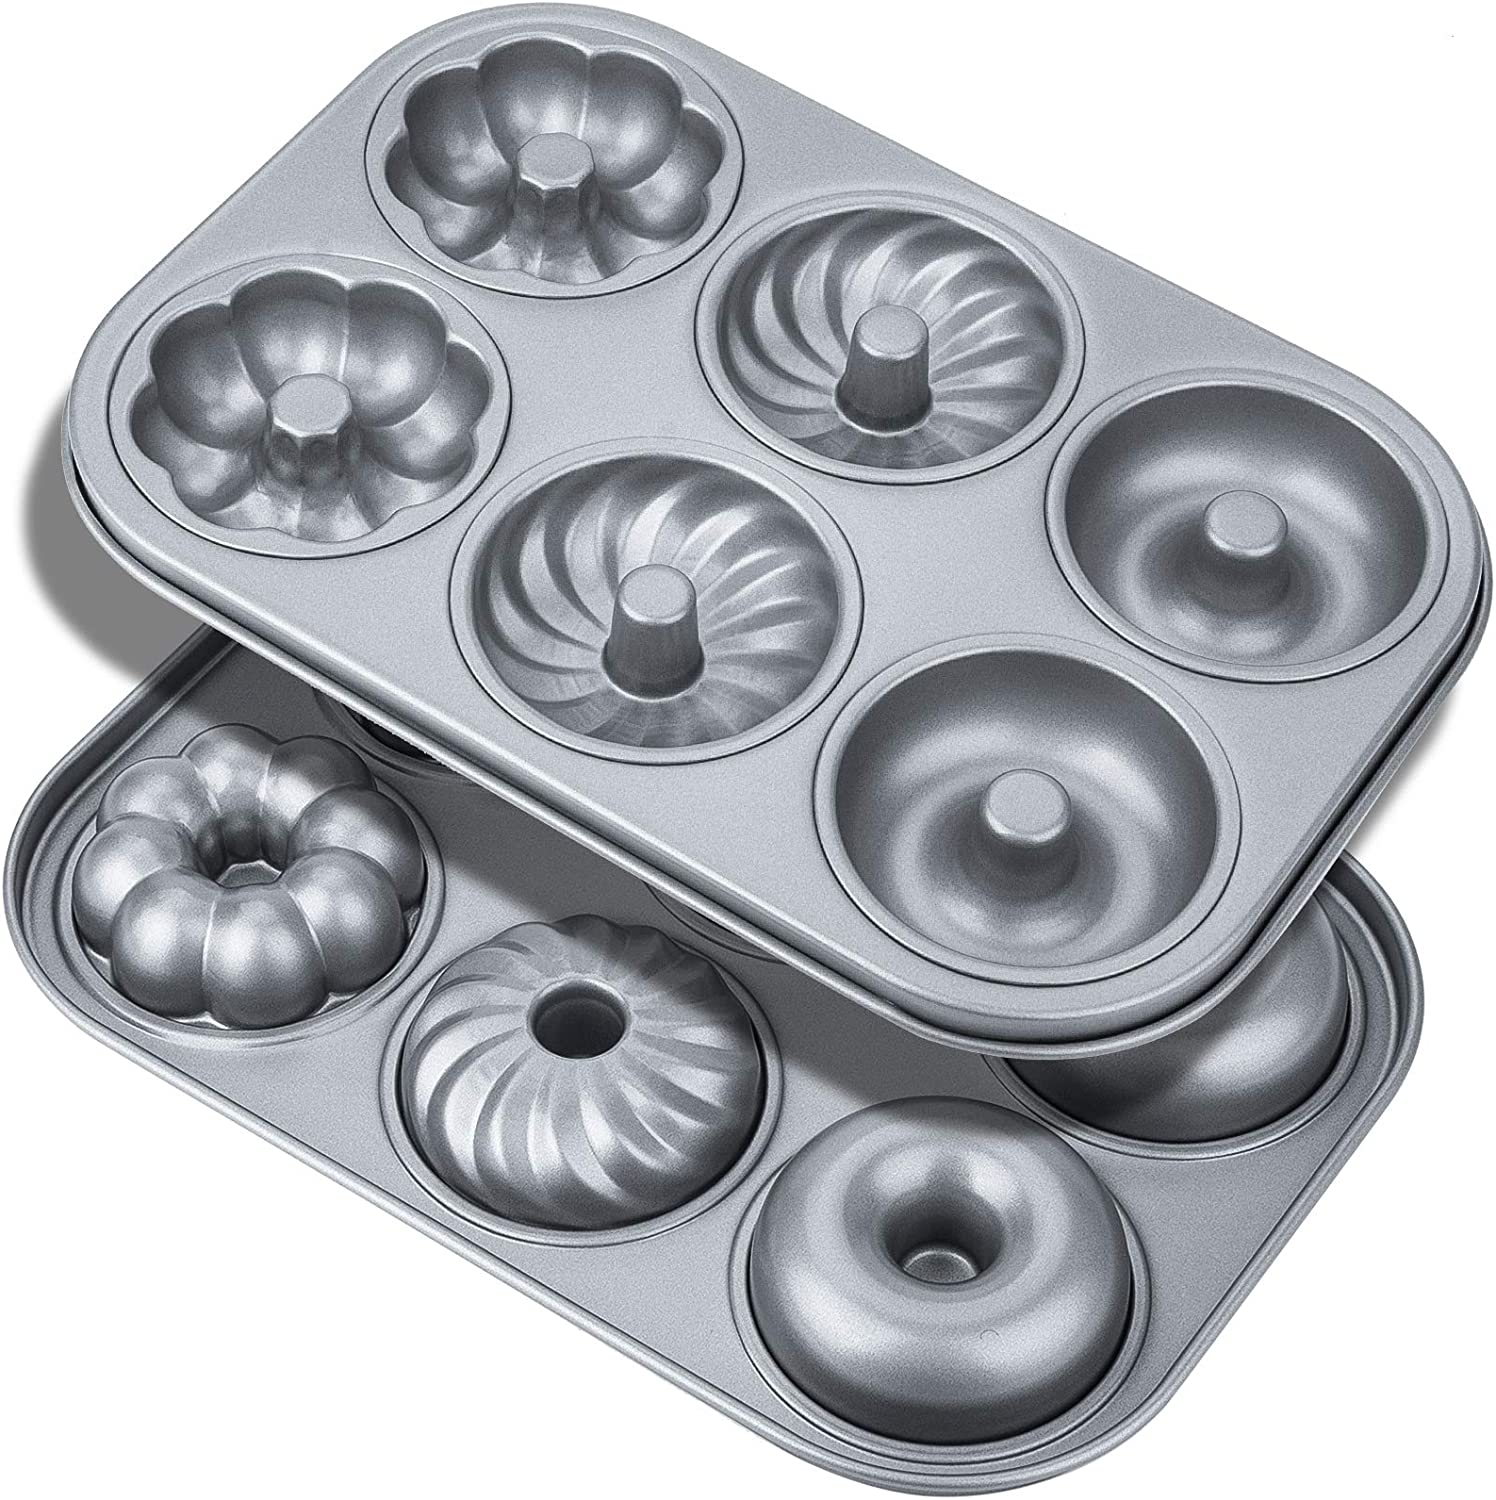 Donut Baking Pans, Non-Stick 6-Cavity With 3 Different Style Donut Pan, Food-grade Carbon Steel Cake Baking Pan, Dishwasher Safe, 2-Count